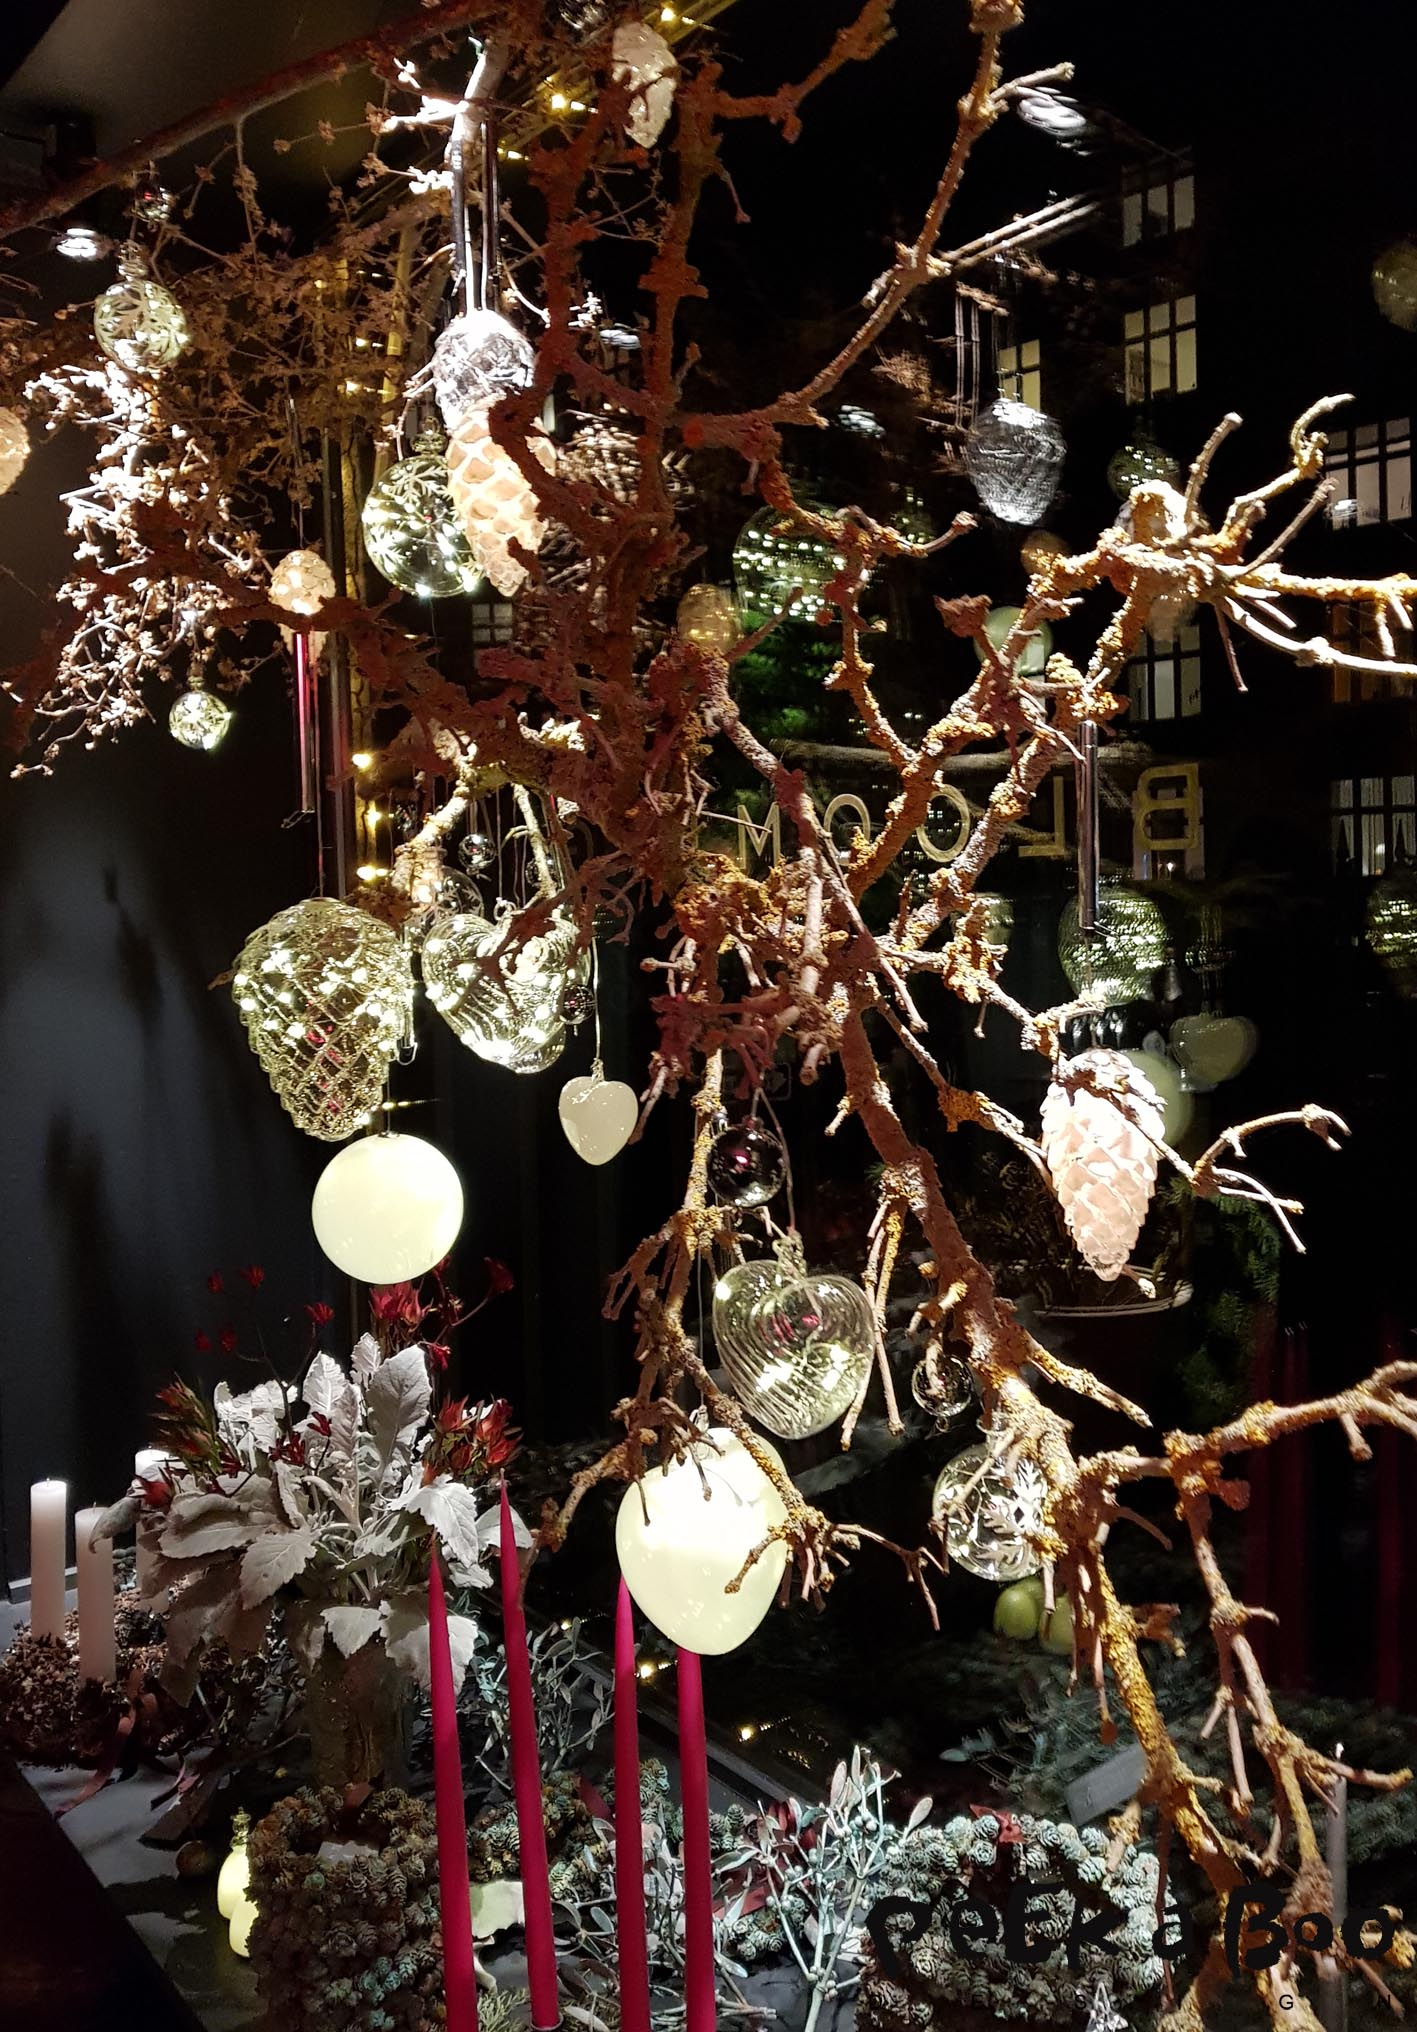 A huge selection of glass ornaments with light inside from Sirius shown in the window of Blooming.